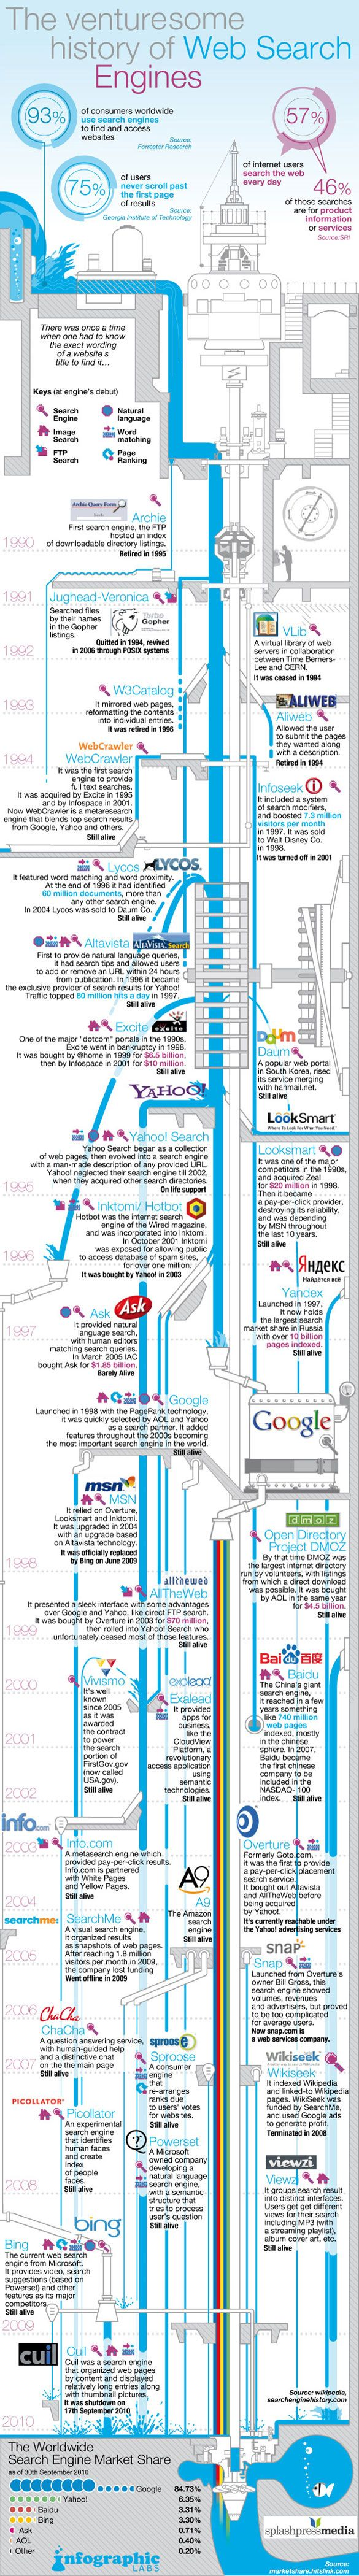 Search Engine Facts: Full Historical Timeline